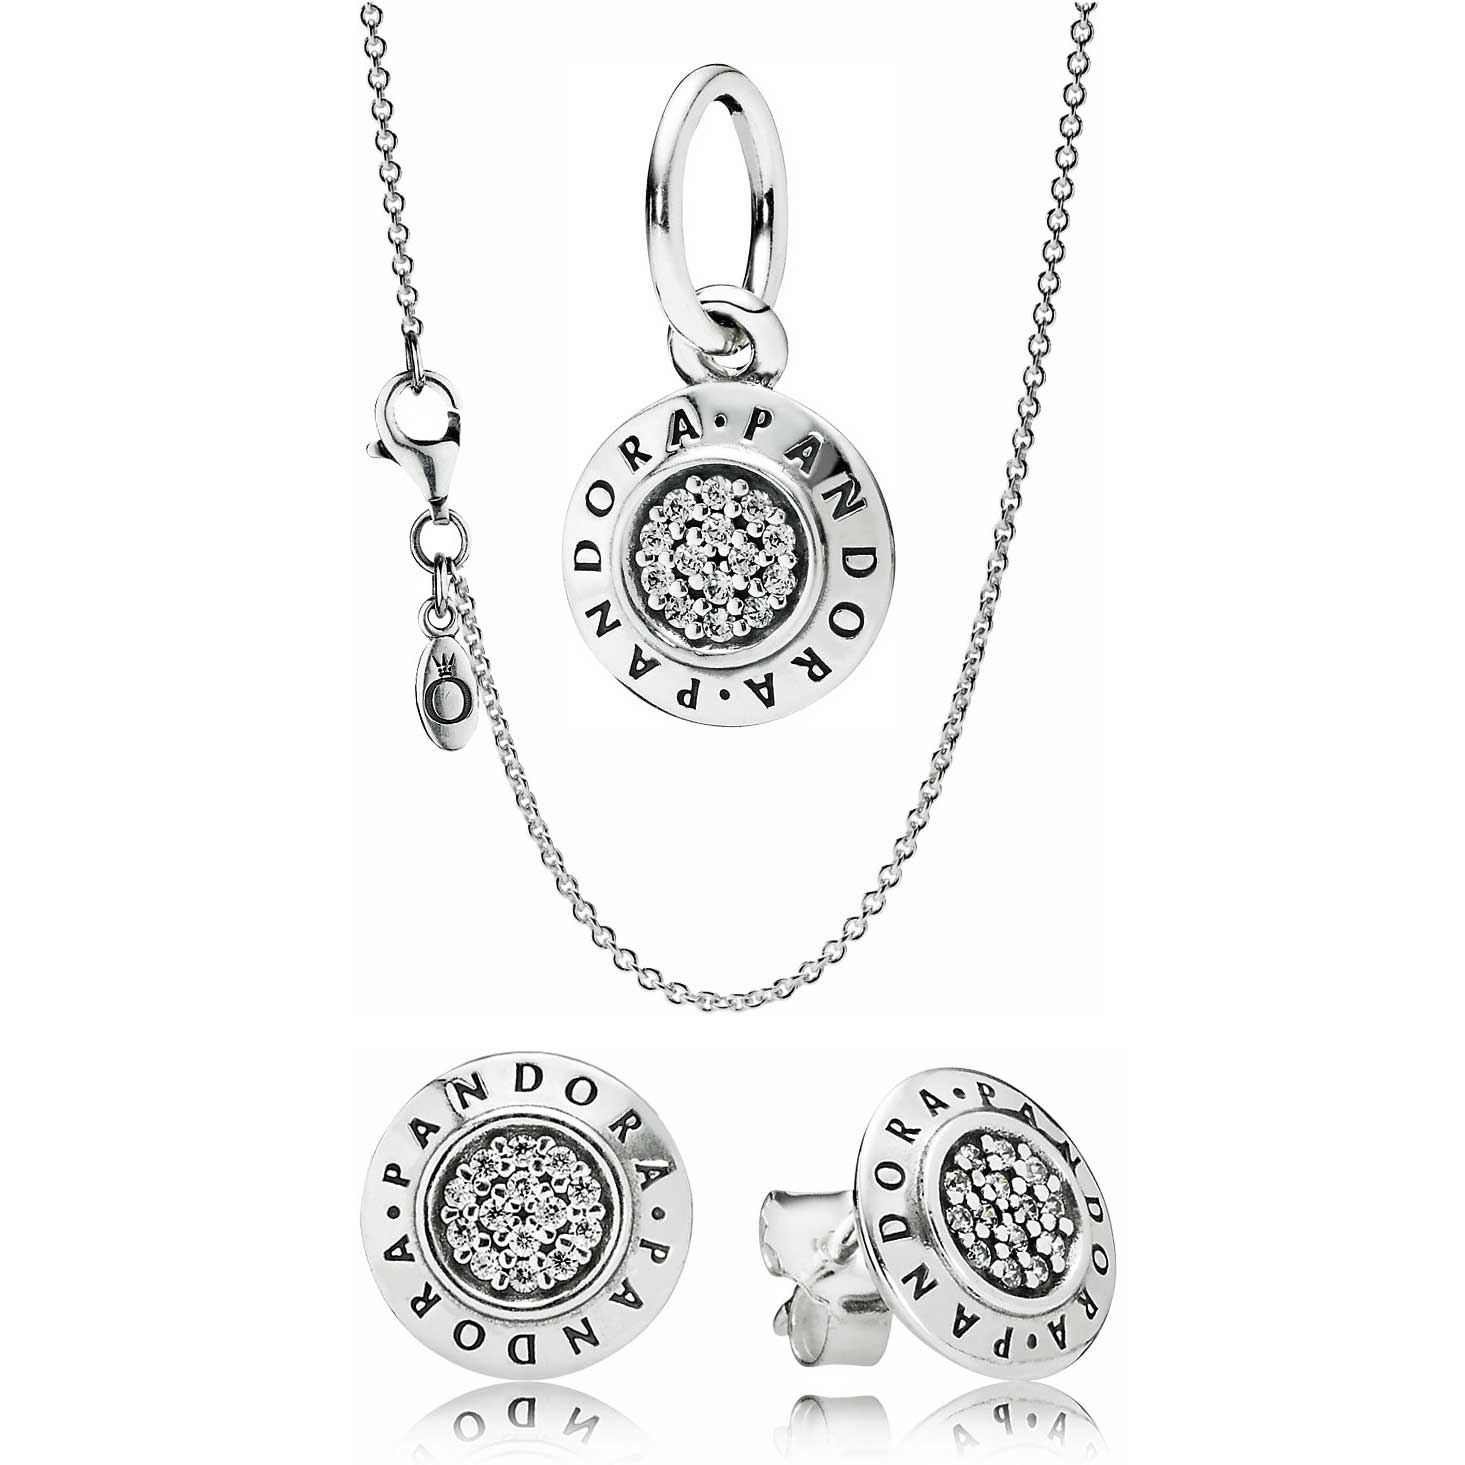 ad321710439f0 hot pandora necklace and earring sets for women 73f49 41968